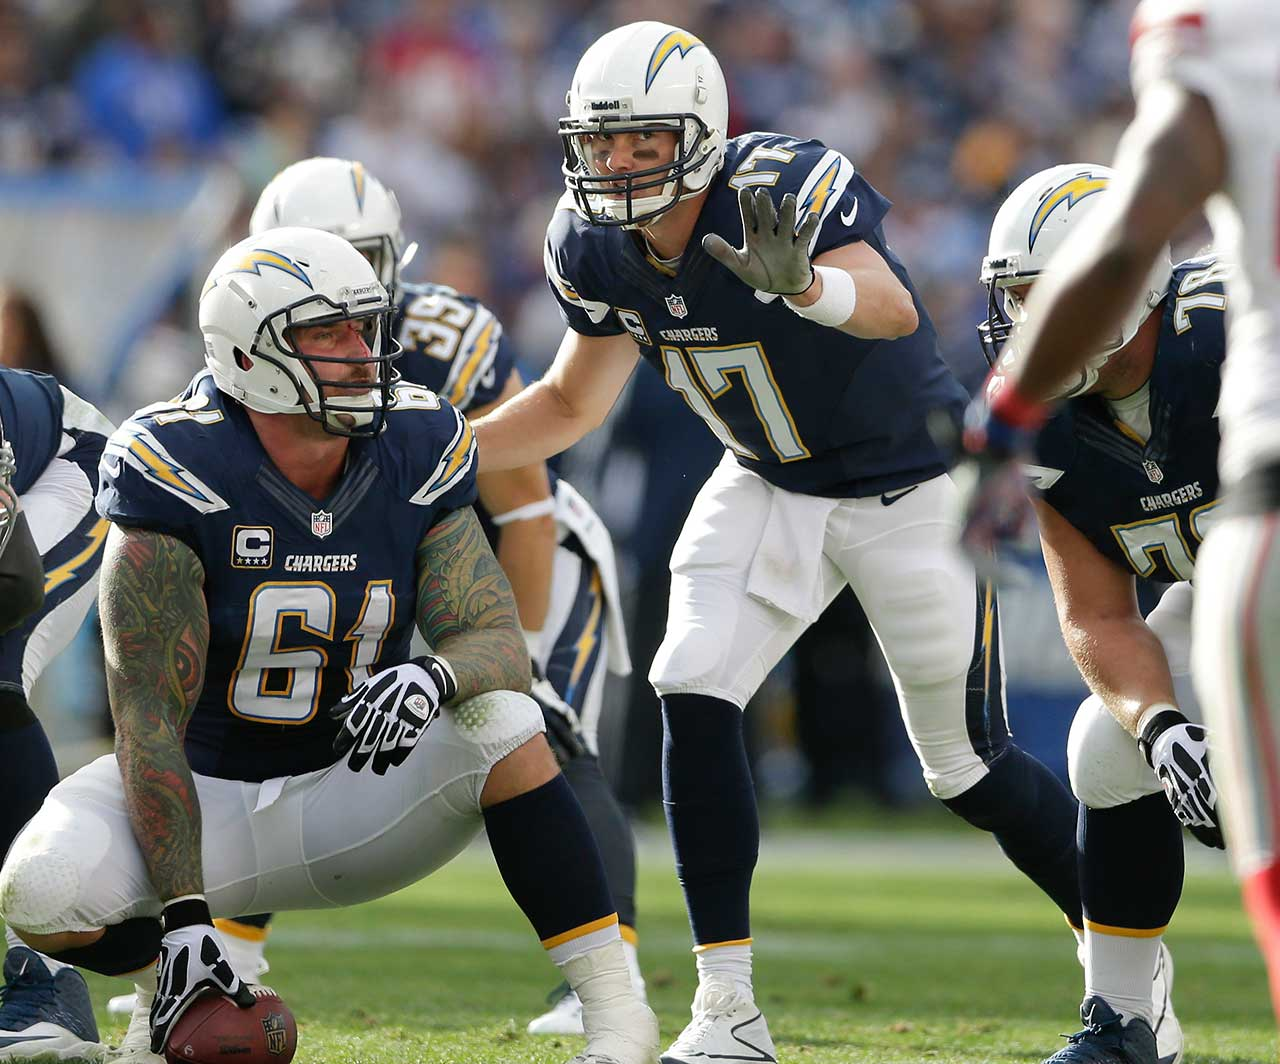 Philip Rivers has played on his birthday once in his 12 seasons in the NFL and the Chargers made sure his 32nd was a happy one as San Diego rolled over Eli Manning and the New York Giants 37-14. Rivers completed 21 of 28 passes for 249 yards and three touchdowns.